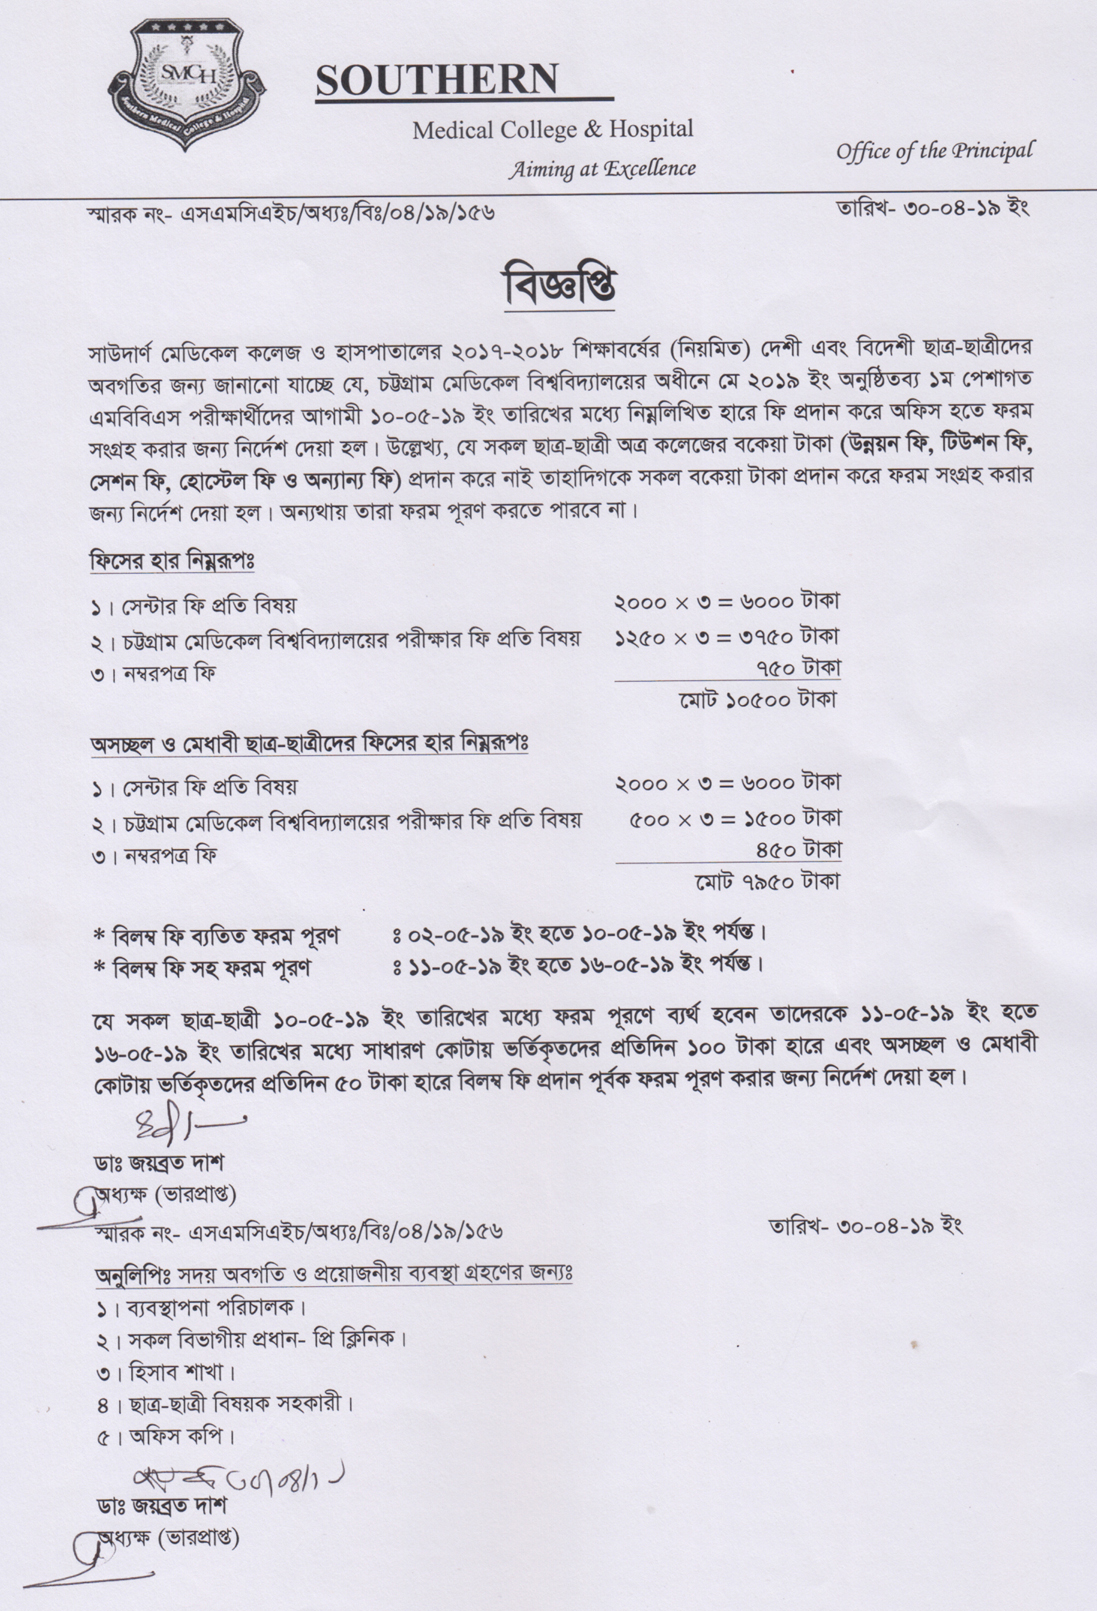 bbd346a4f0 Notice: Holiday, (Date:05-08-2019) | SOUTHERN MEDICAL COLLEGE & HOSPITAL